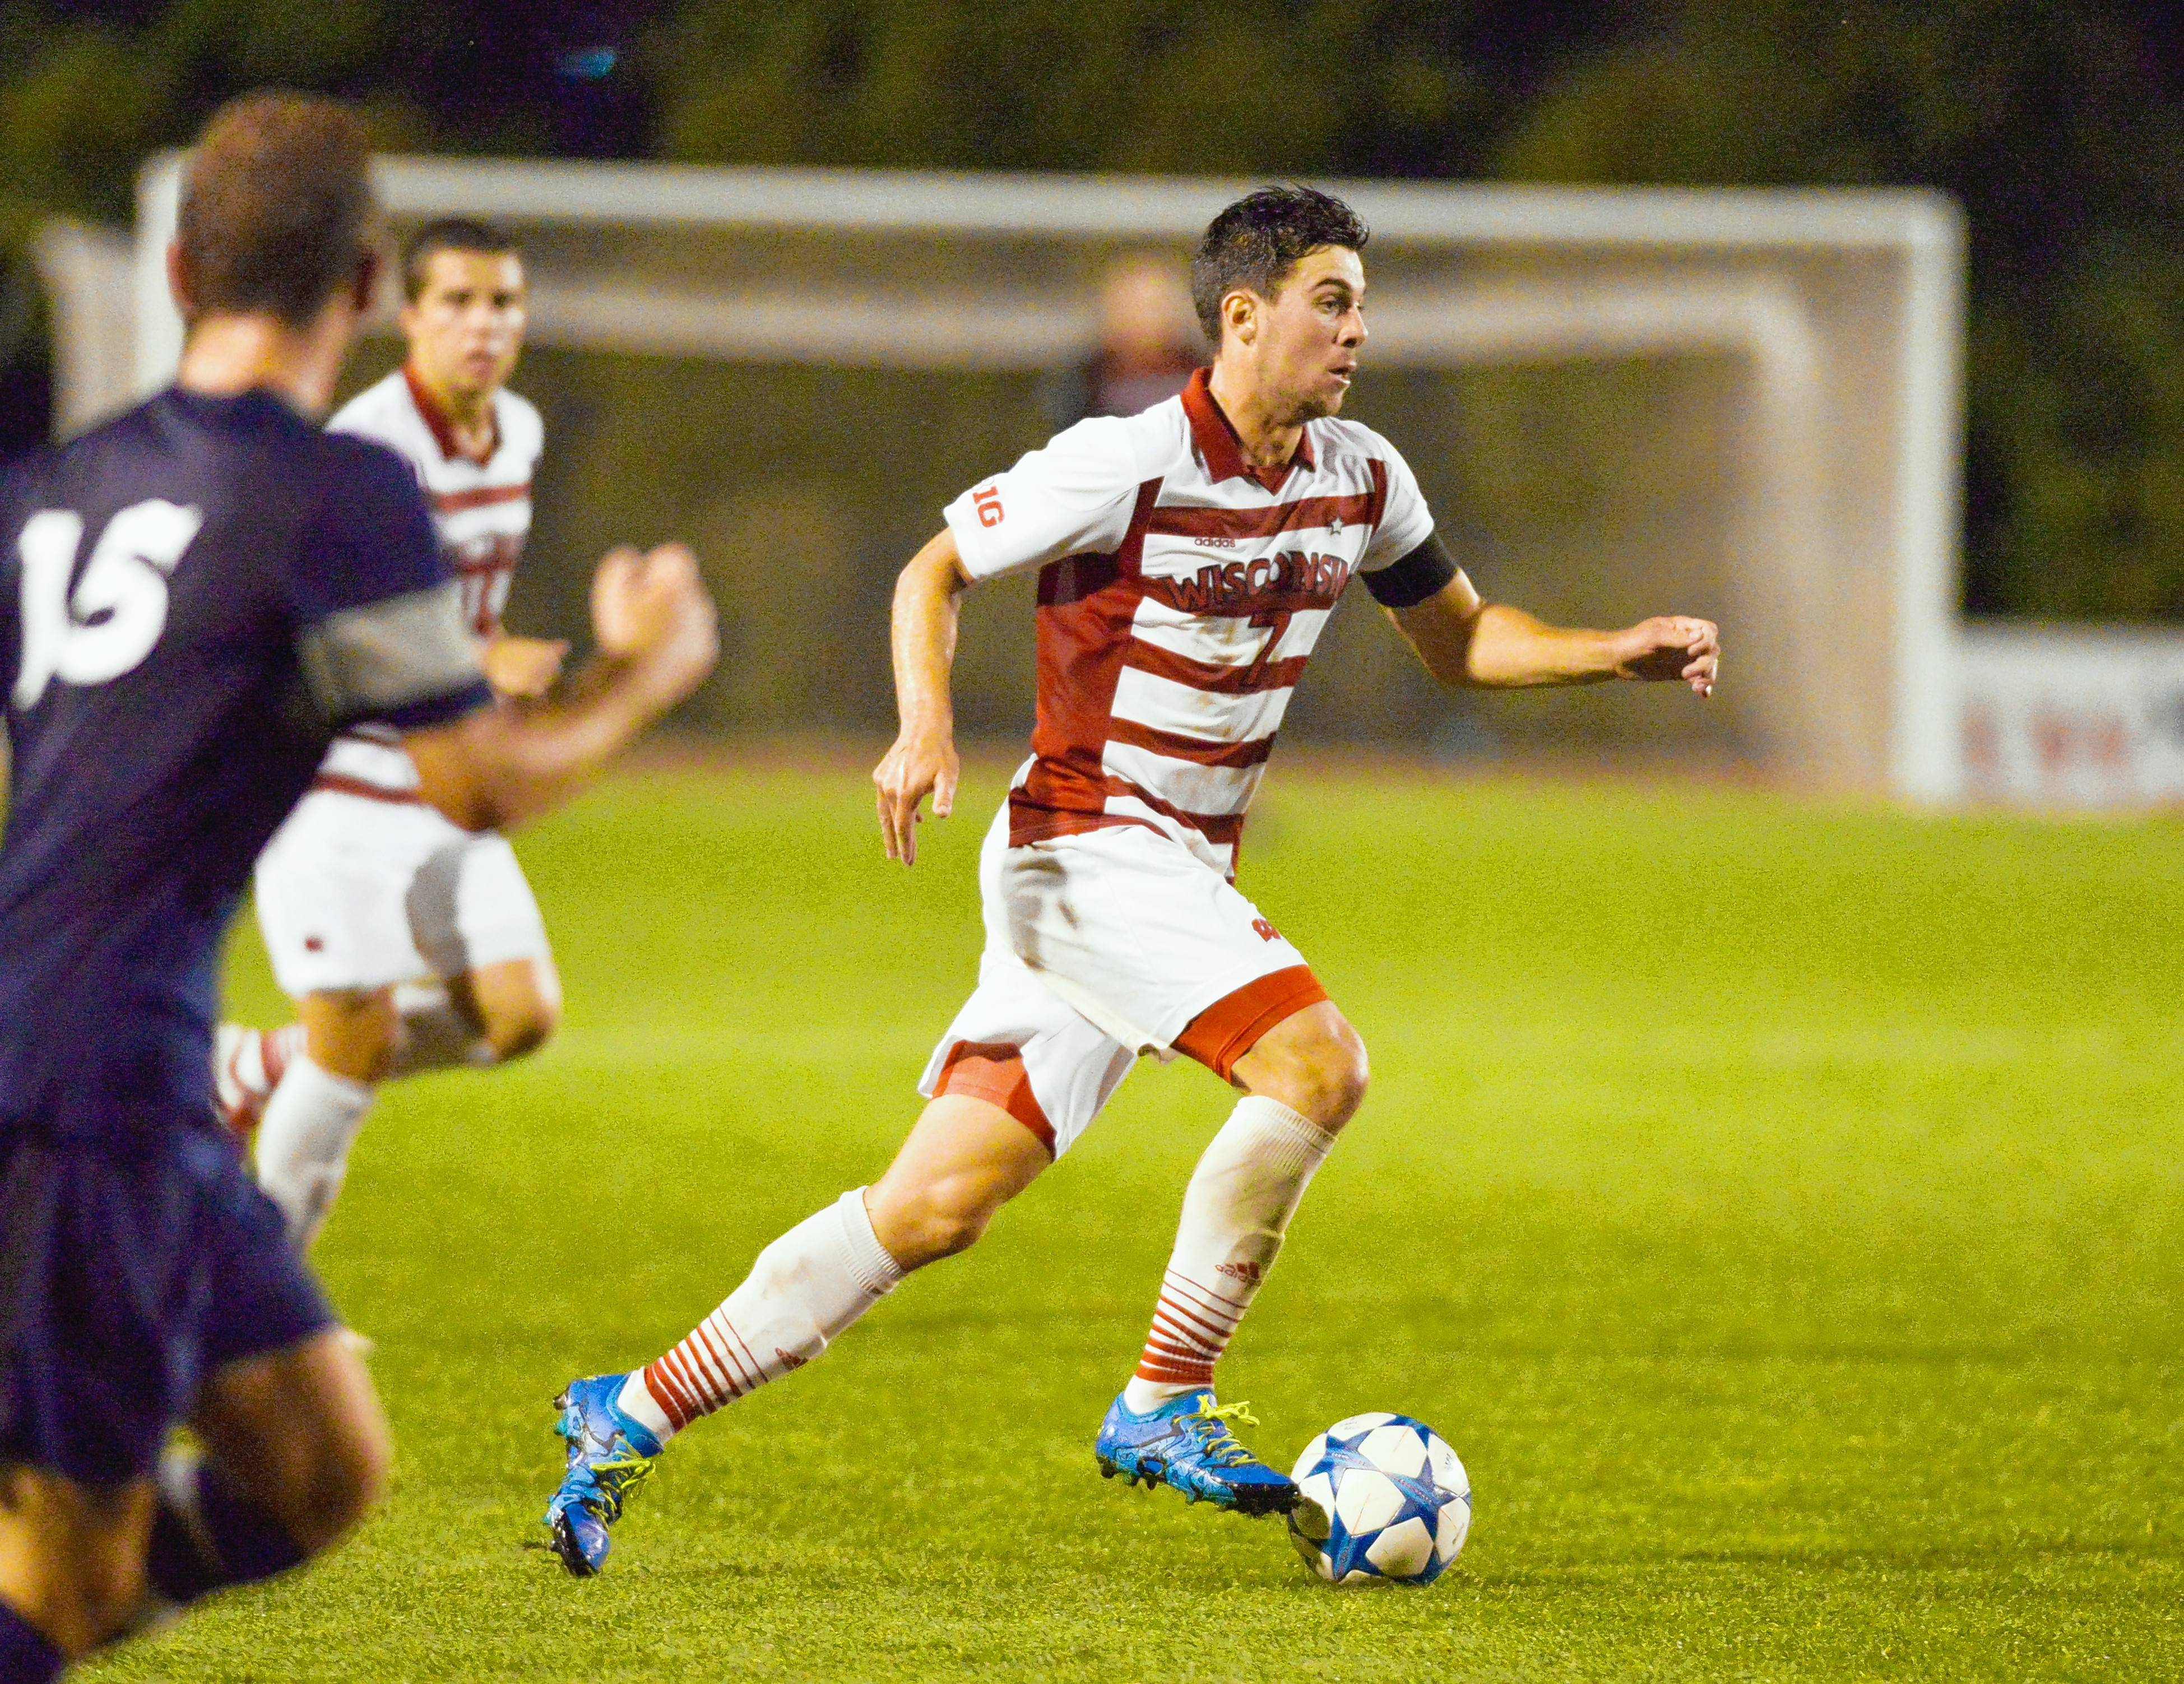 Photo courtesy of Wisconsin Athletic CommunicationsDrew Conner, a captain and midfielder for the Wisconsin Badgers, has signed with the Chicago Fire.